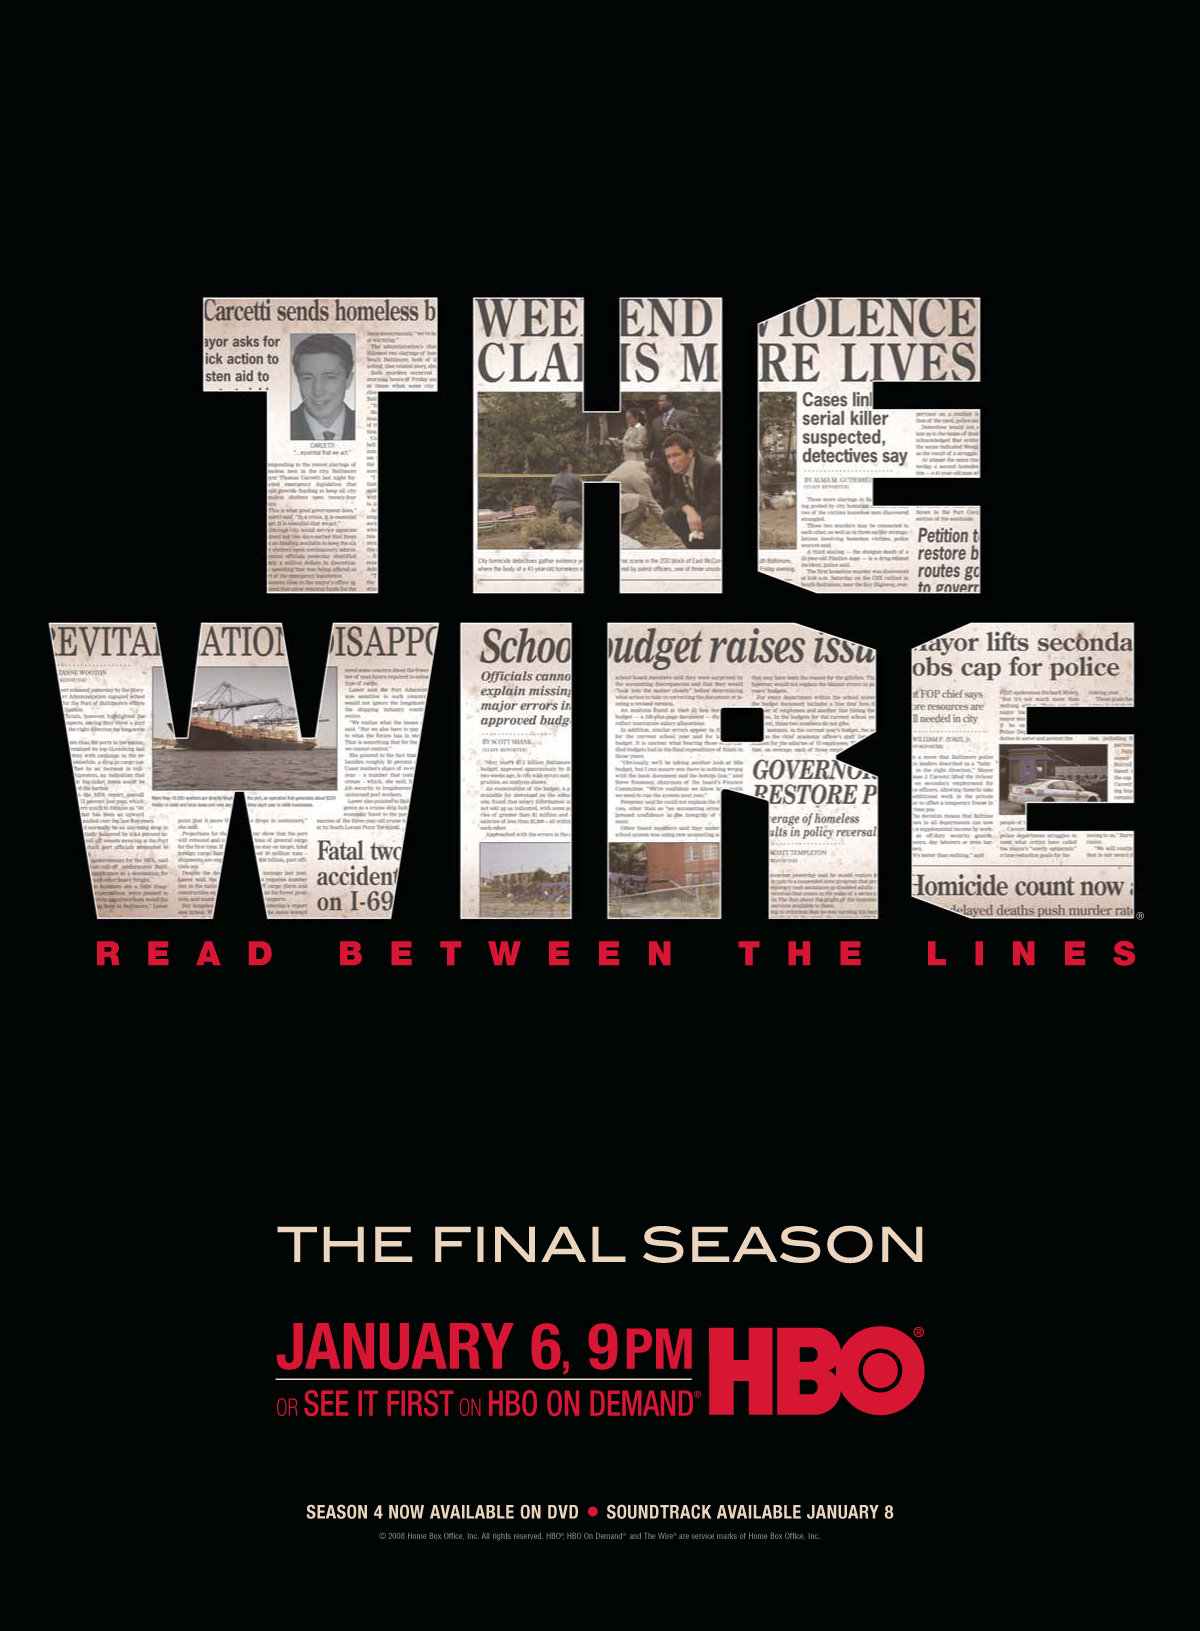 On Demand The Wire Data Wiring Filerc Circuitsvg Wikipedia Tv Series 2002 2008 Imdb Rh Com Foxtel